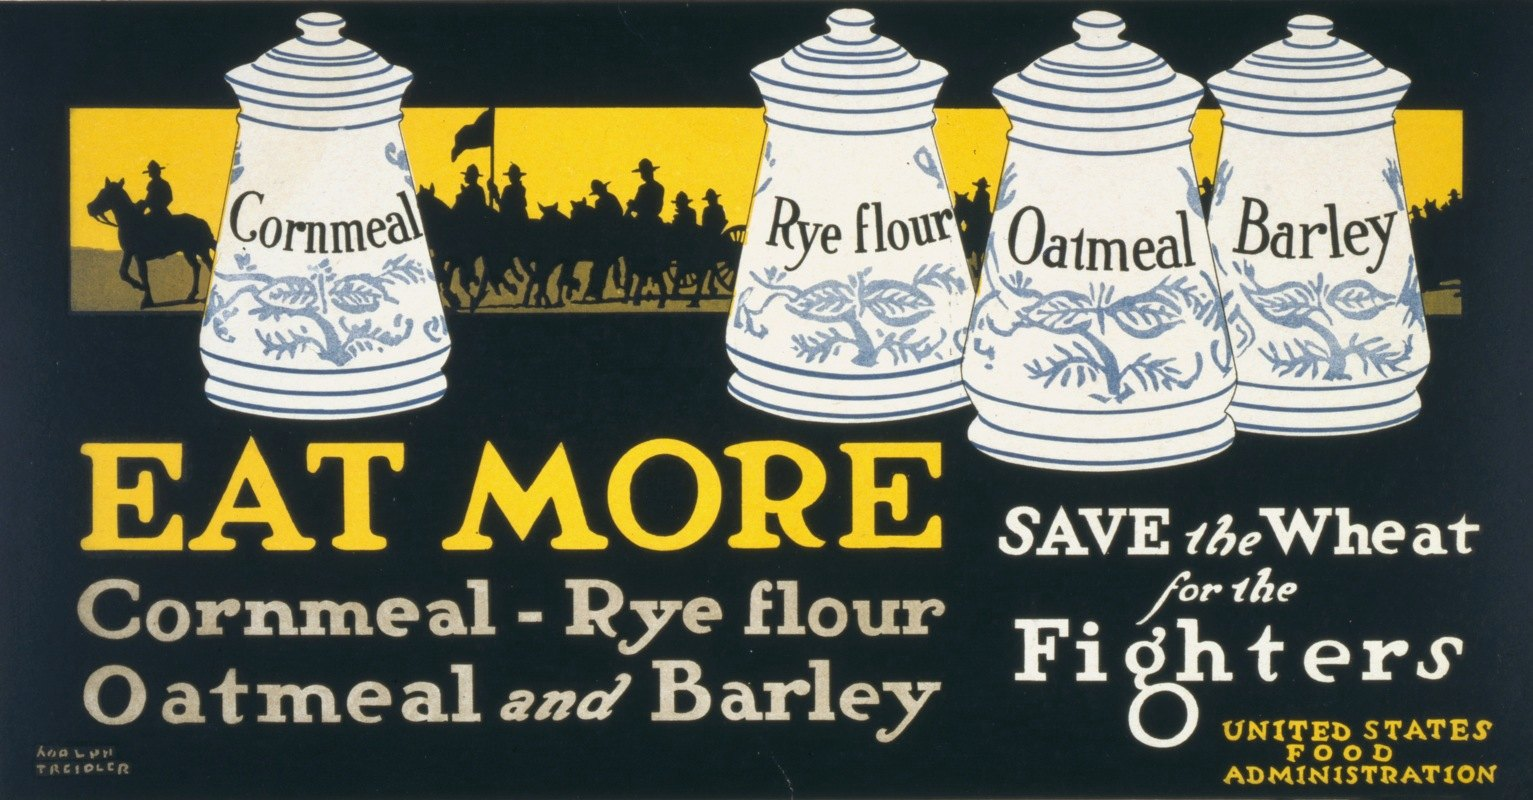 Adolph Treidler - Eat more cornmeal, rye flour, oatmeal, & barley–Save the wheat for the fighters